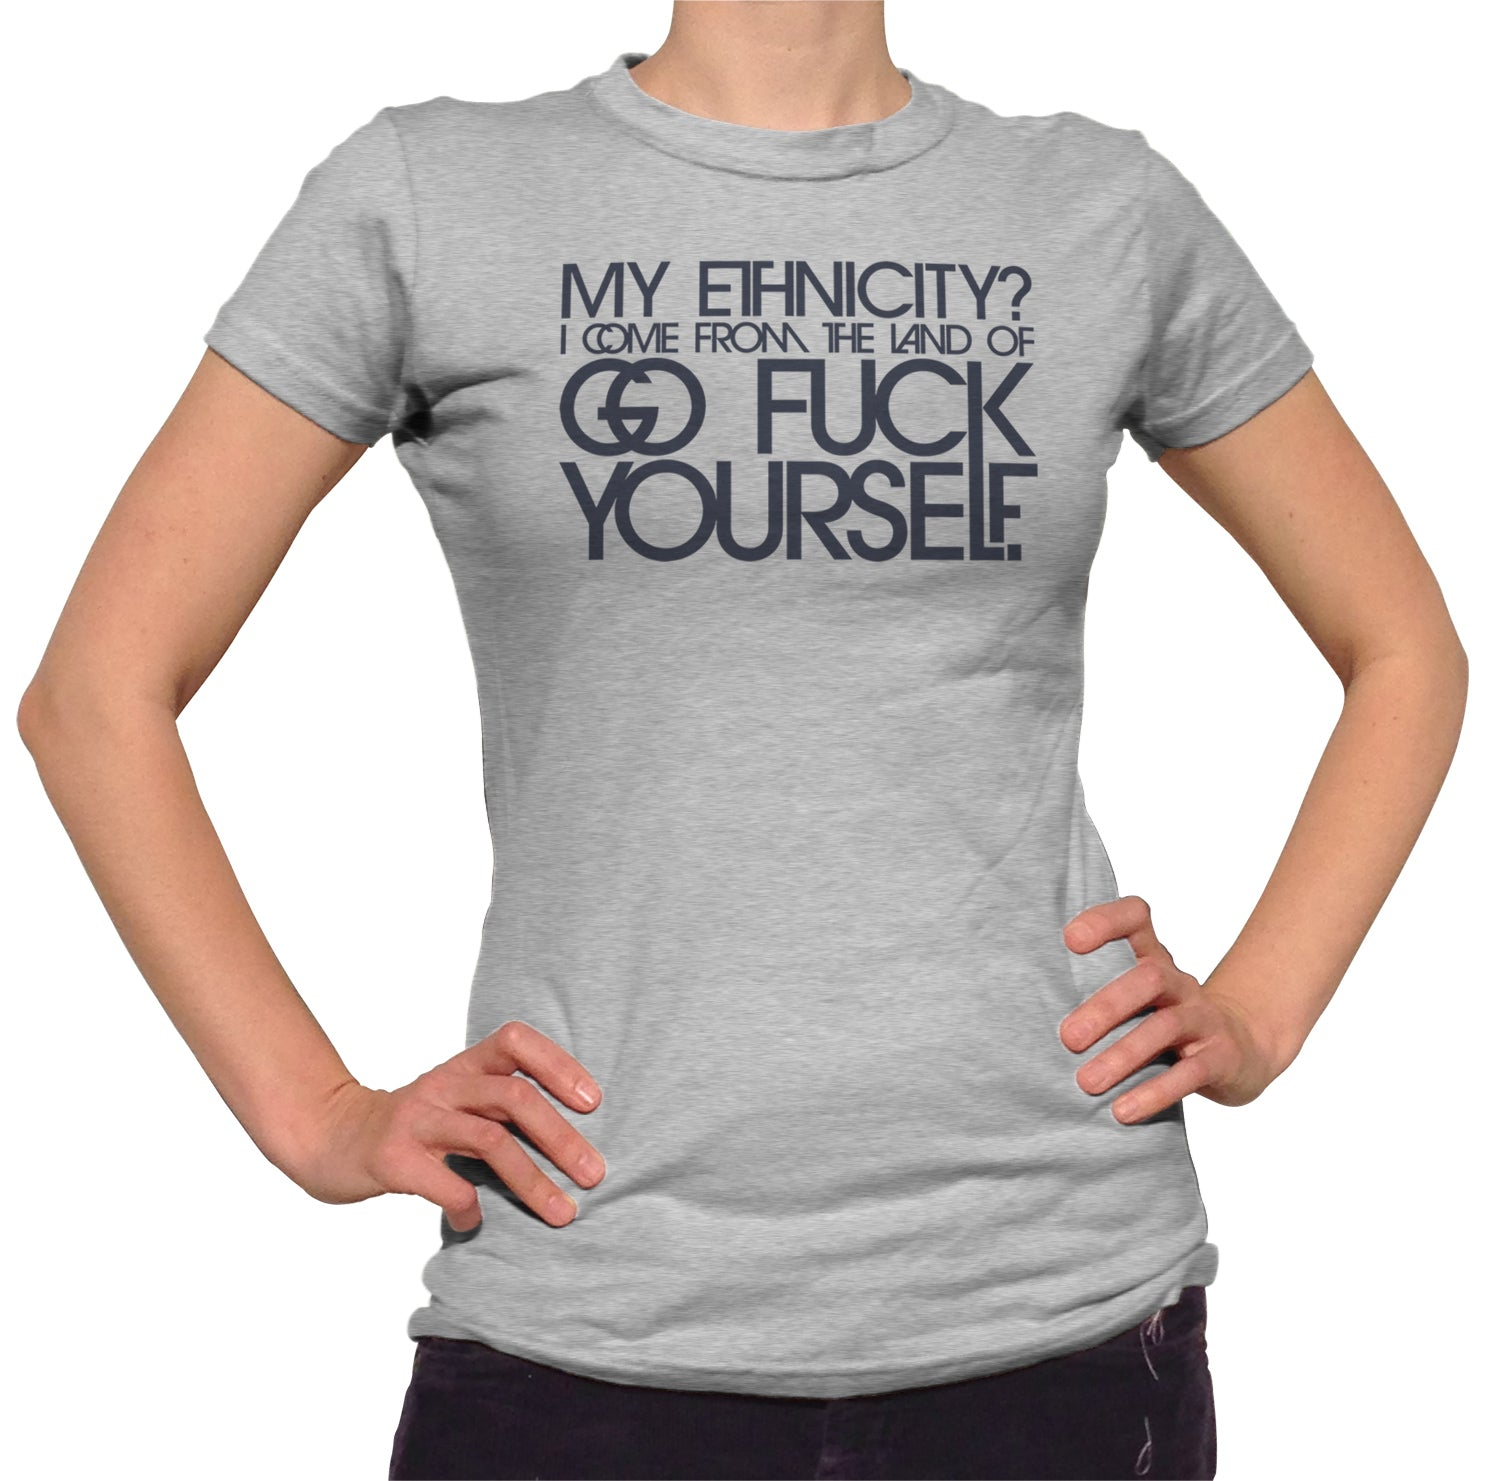 Women's My Ethnicity? I Come From The Land Of... T-Shirt